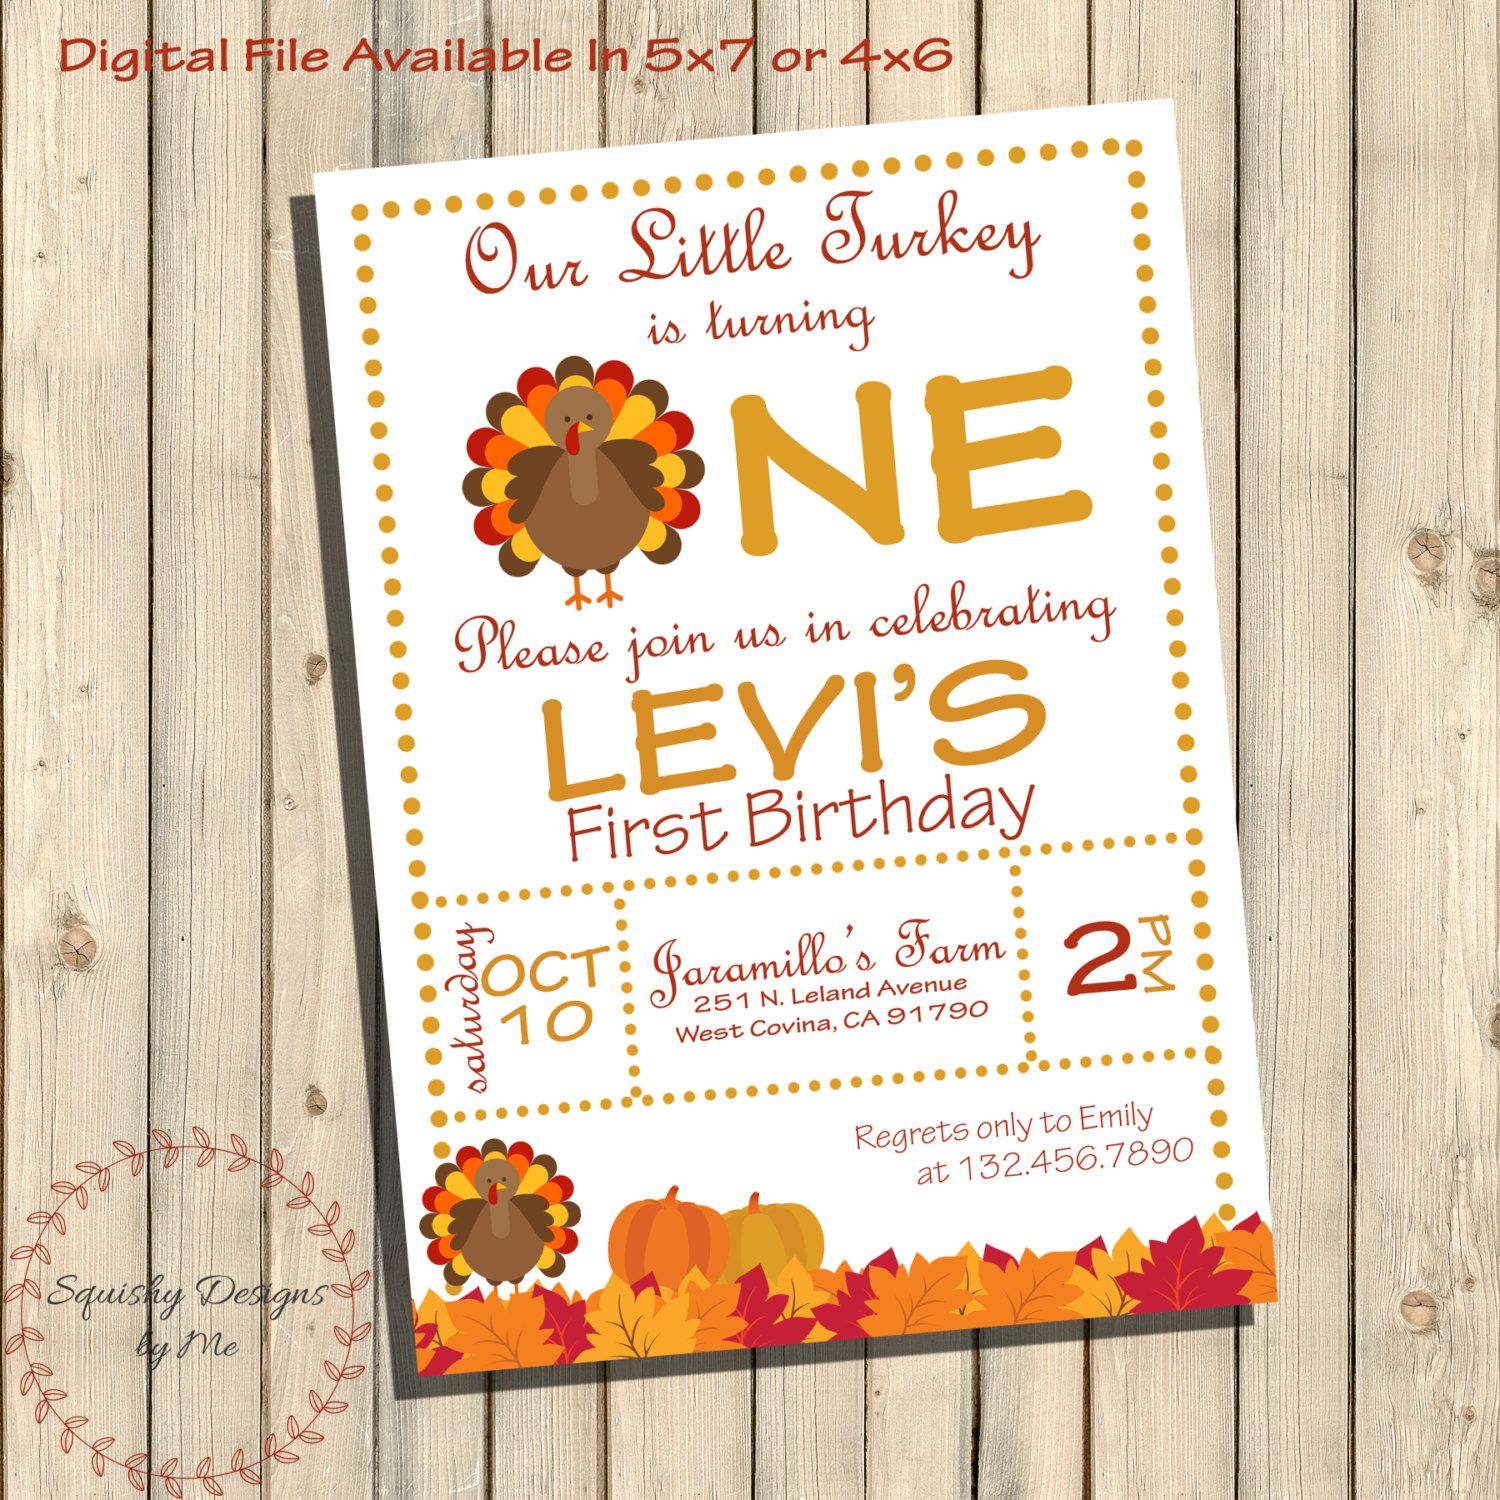 Our Little Turkey Is Turning e Birthday Invitation Thanksgiving